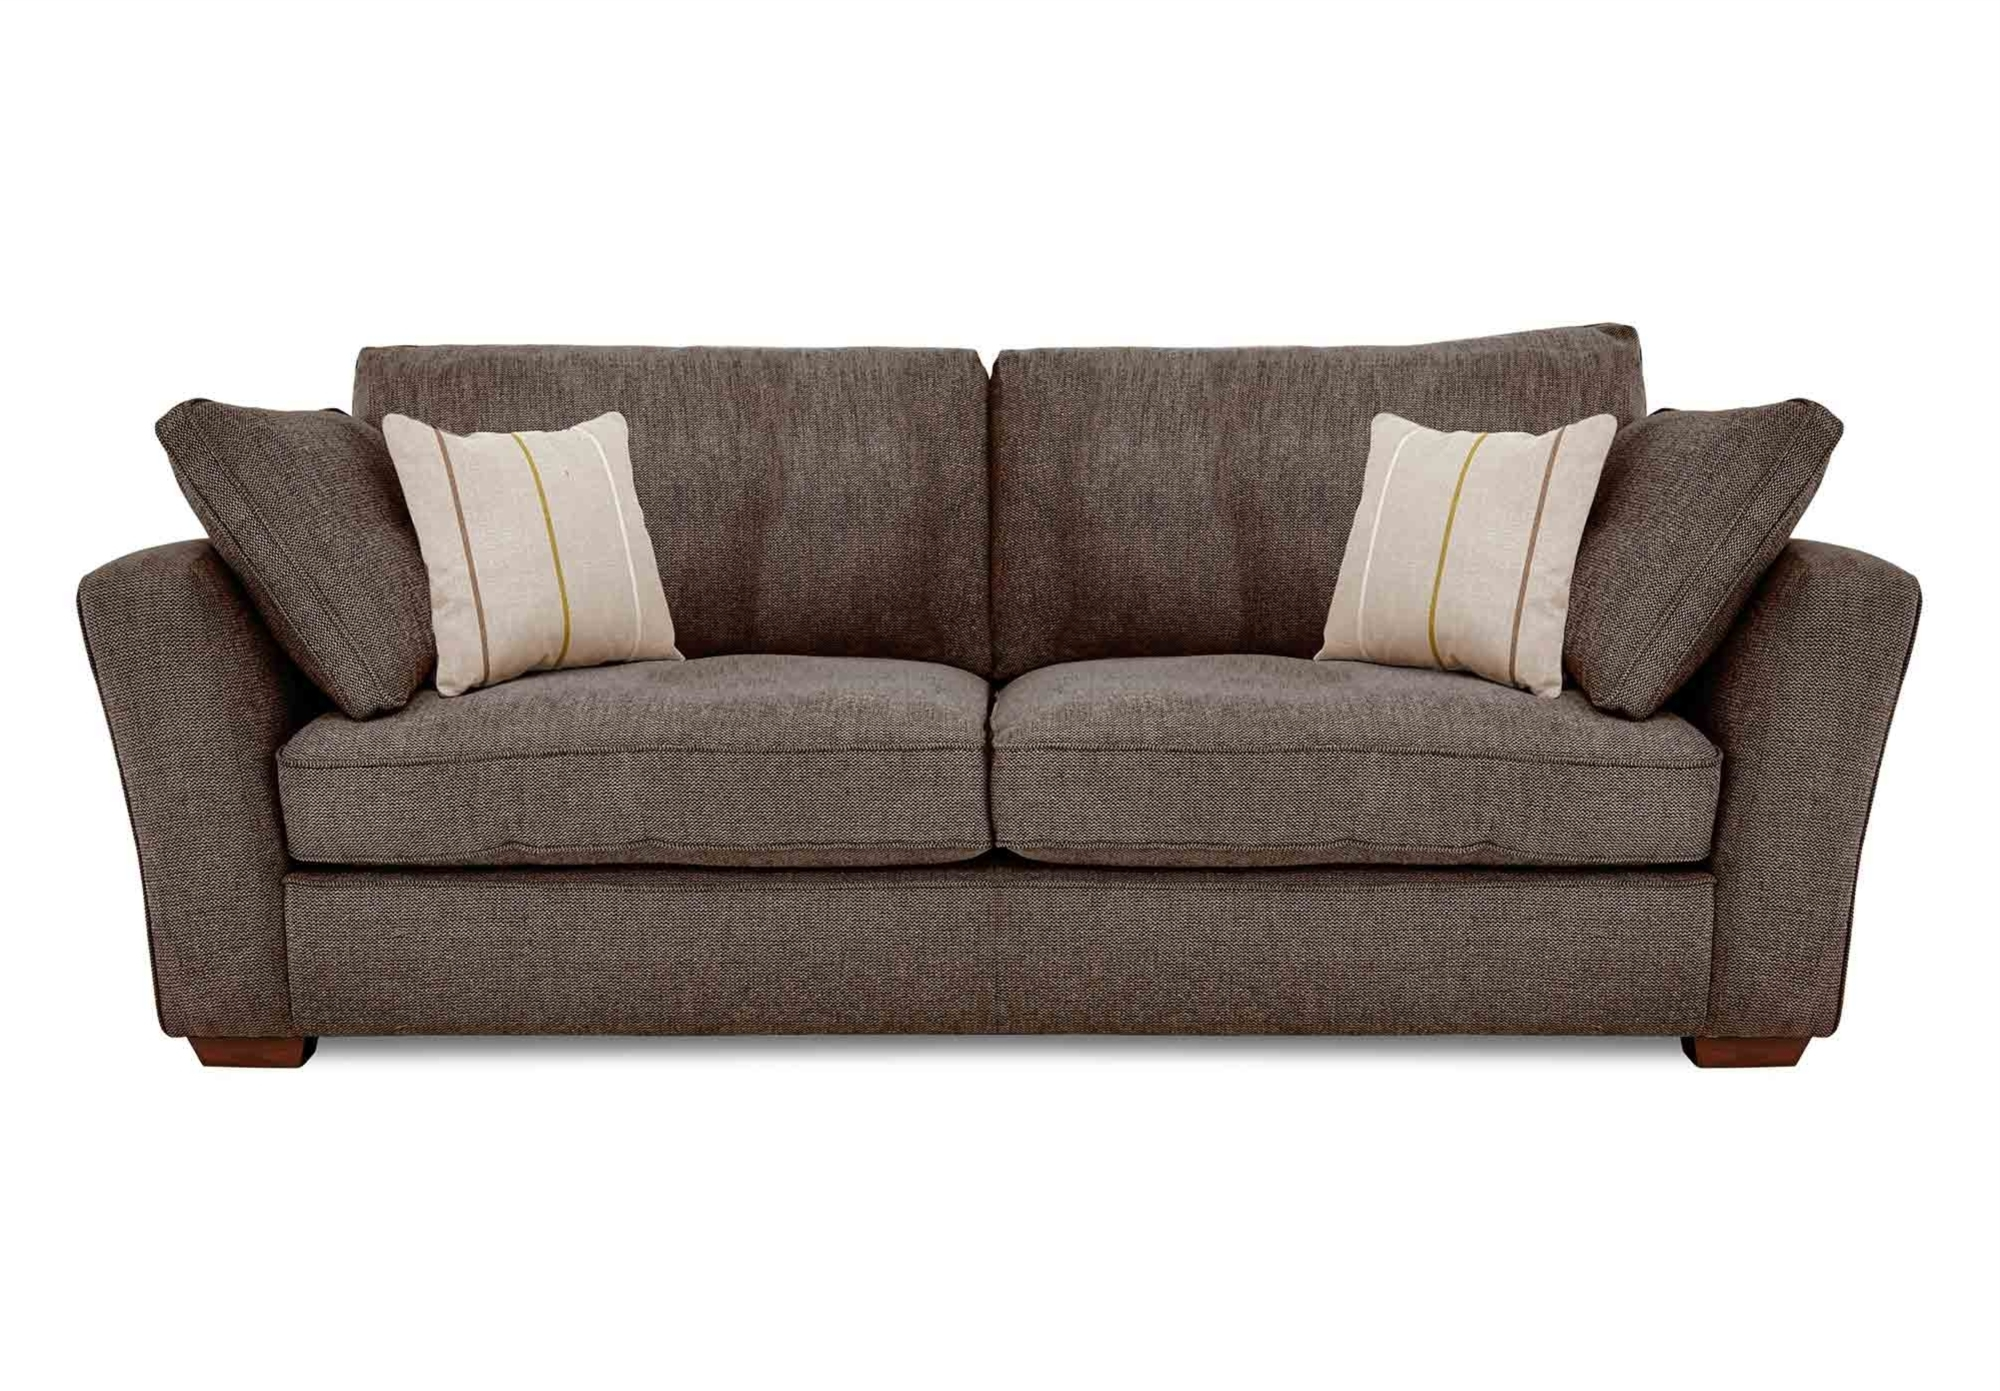 Large 4 Seater Sofas Intended For 2018 4 Seater Sofa – Otto – Gorgeous Living Room Furniture From (View 4 of 15)